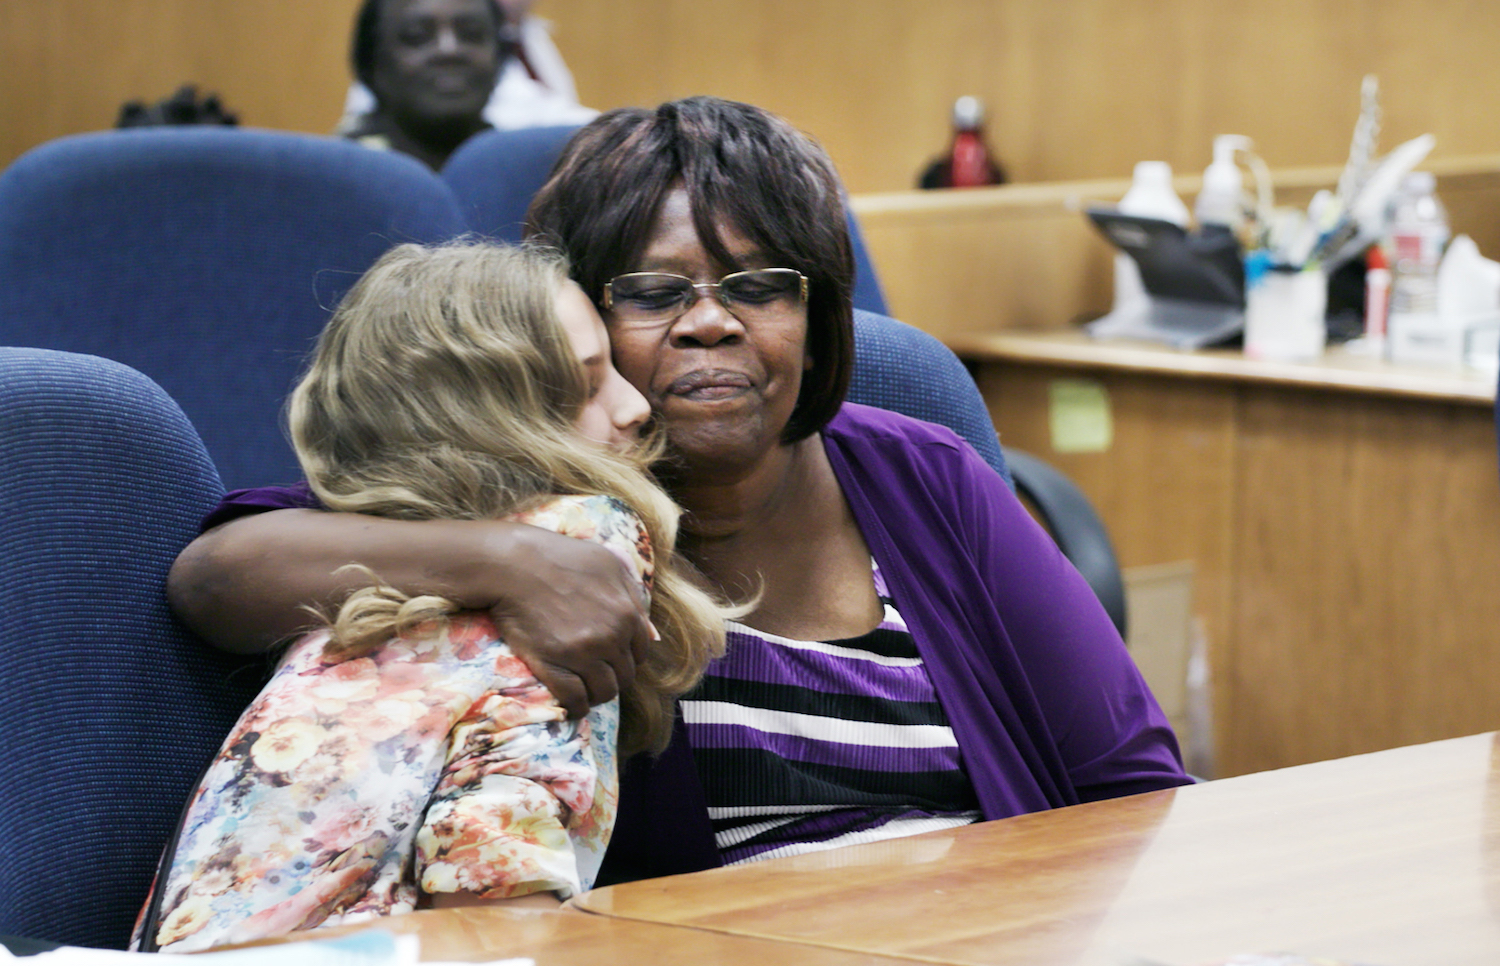 HBO Documentary 'Foster' Aims to Show the Truth & Hope Inside the Child Welfare System